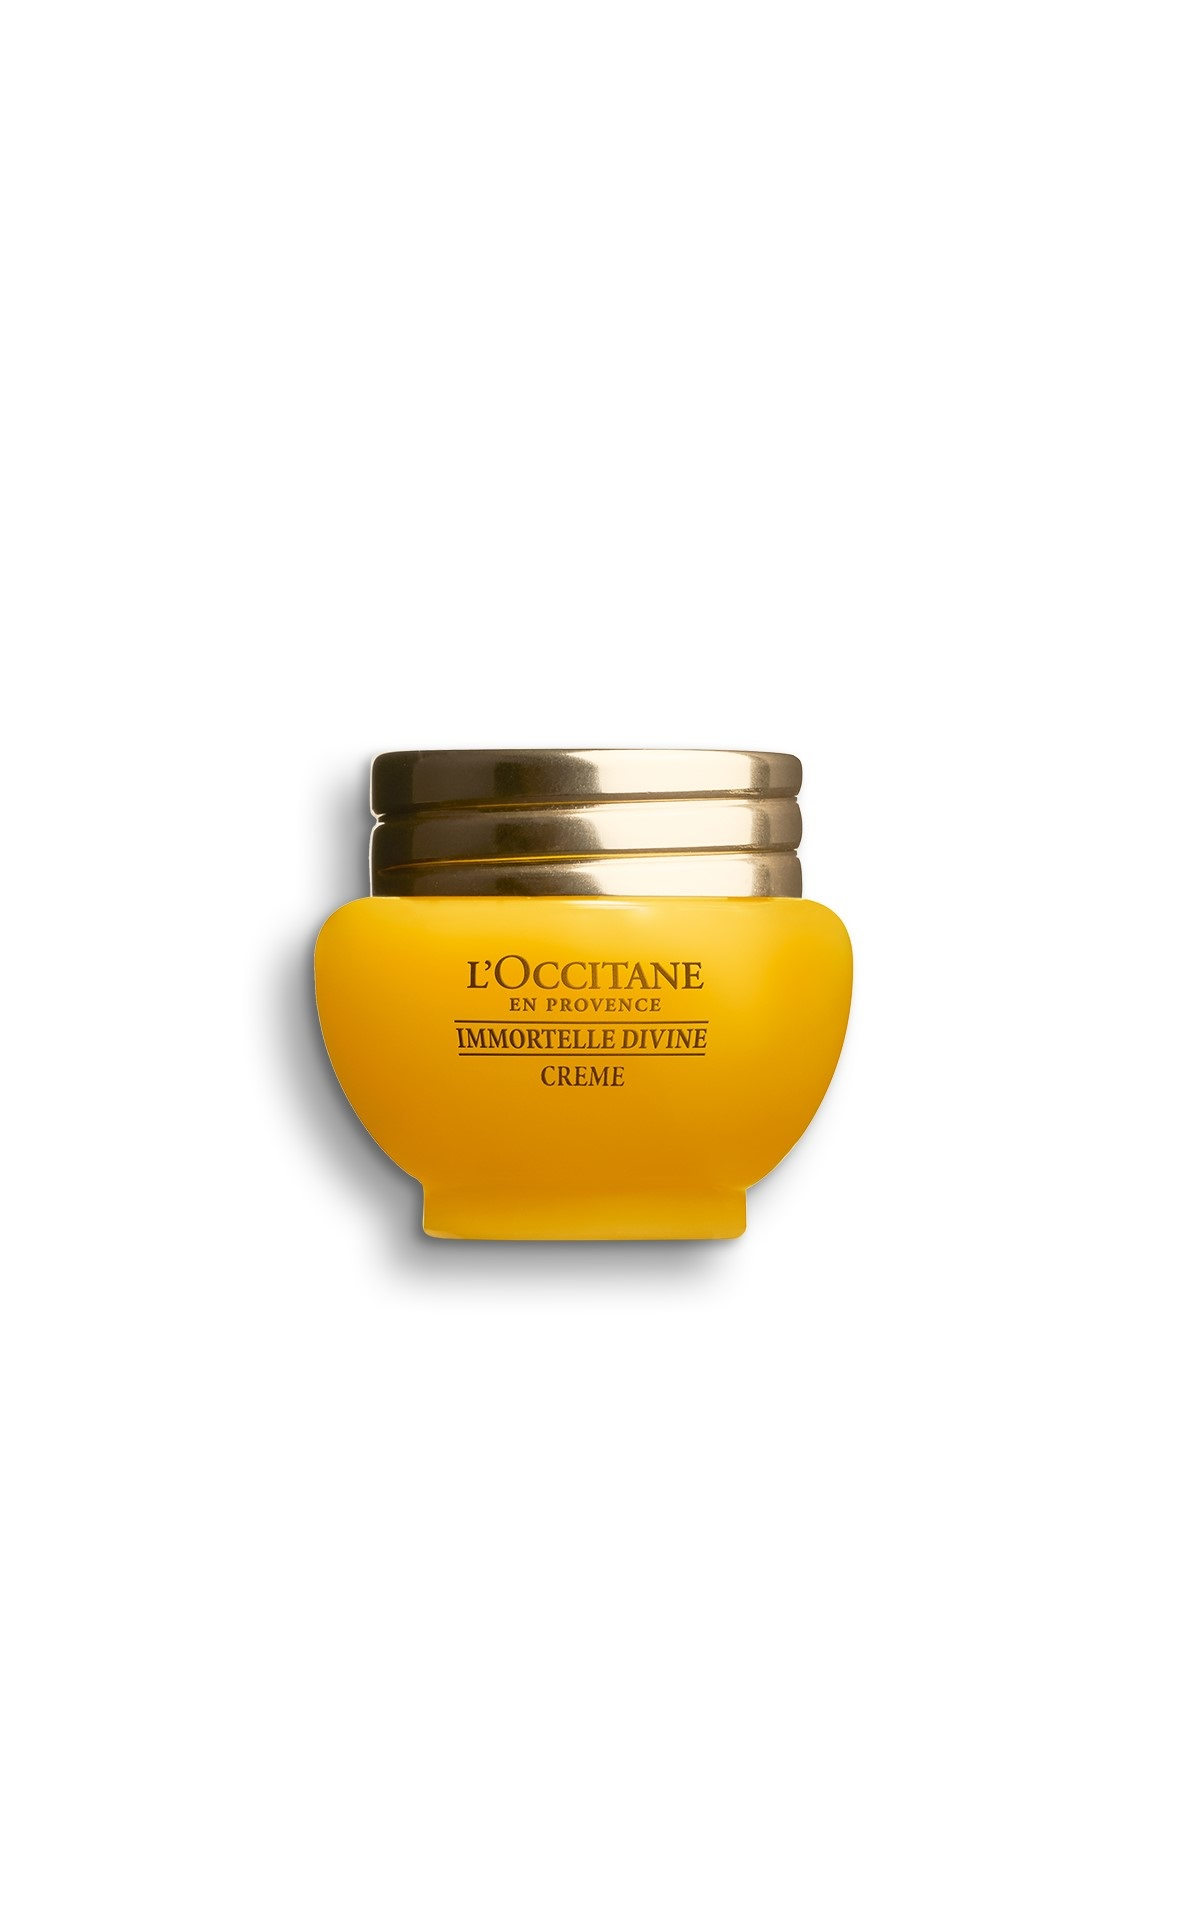 Immortelle divine cream L'occitane en provence